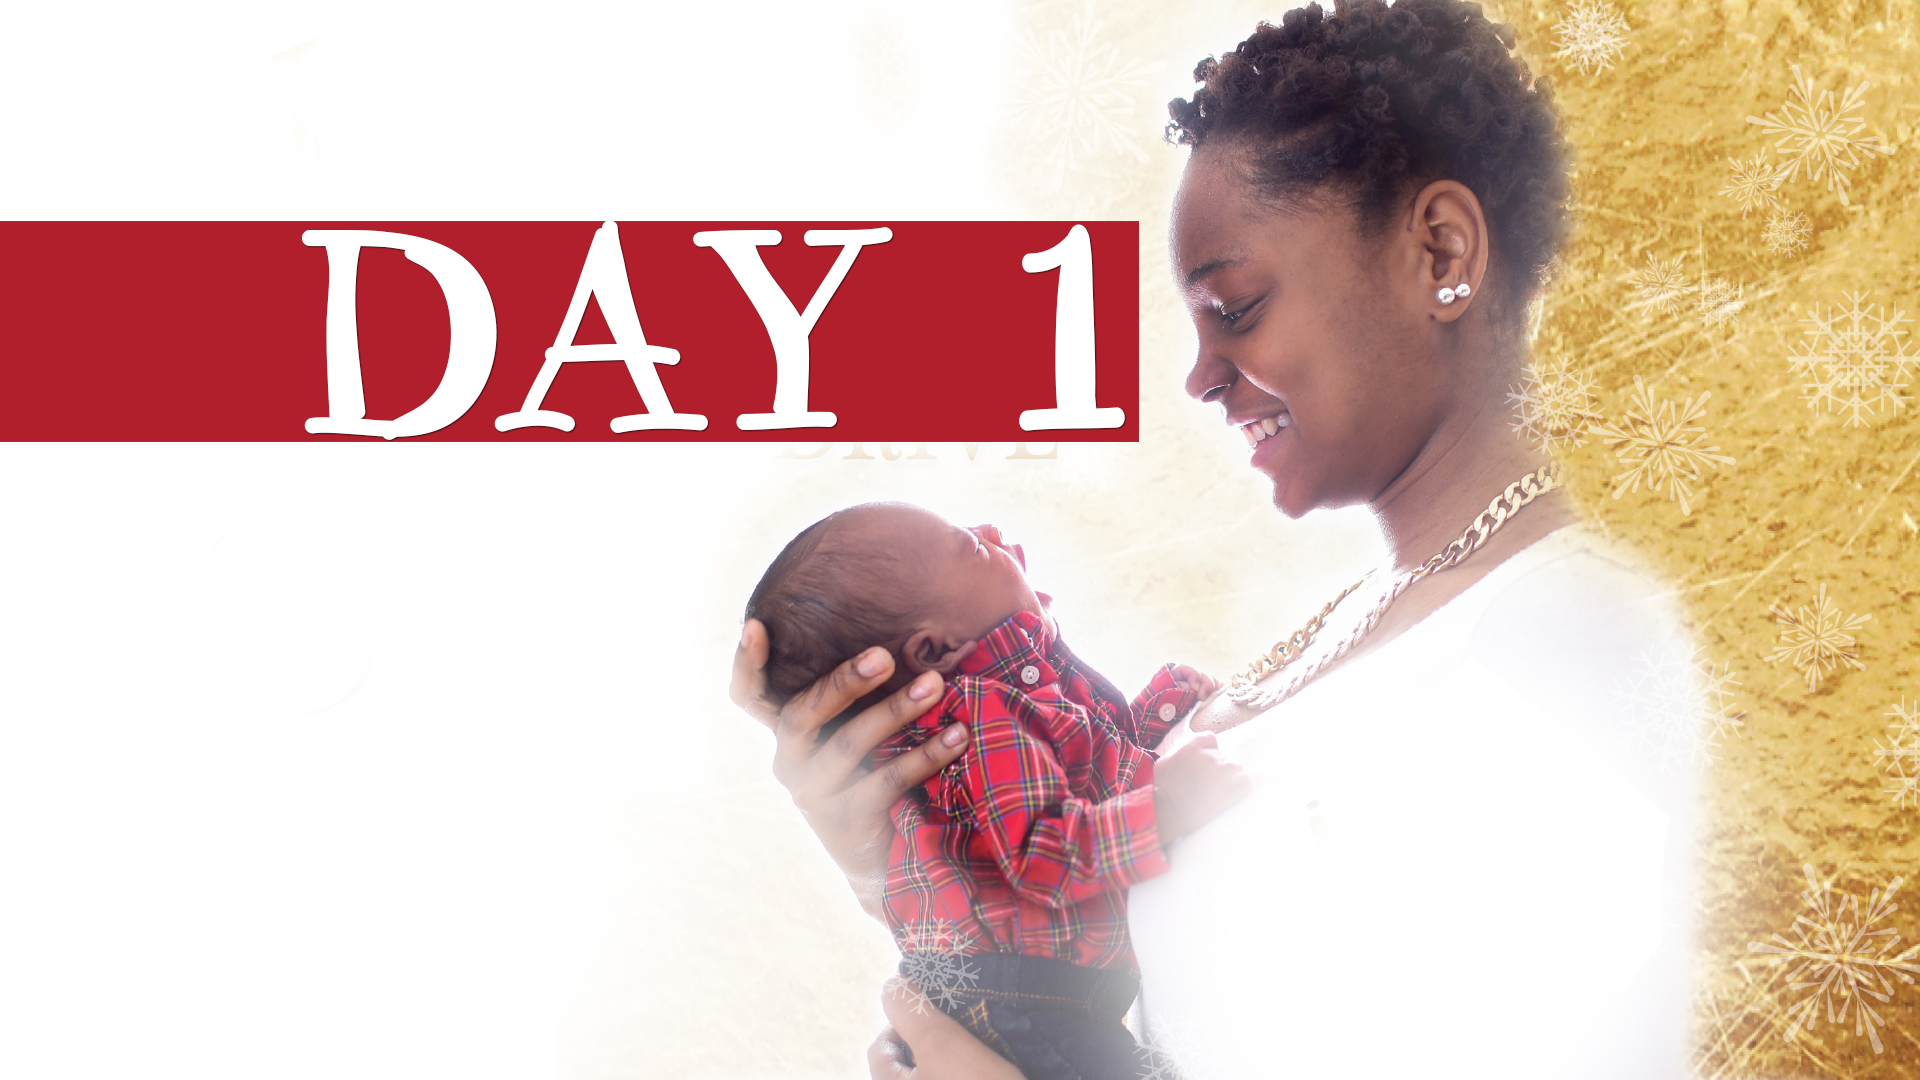 Da1 - 12 Days of Hope